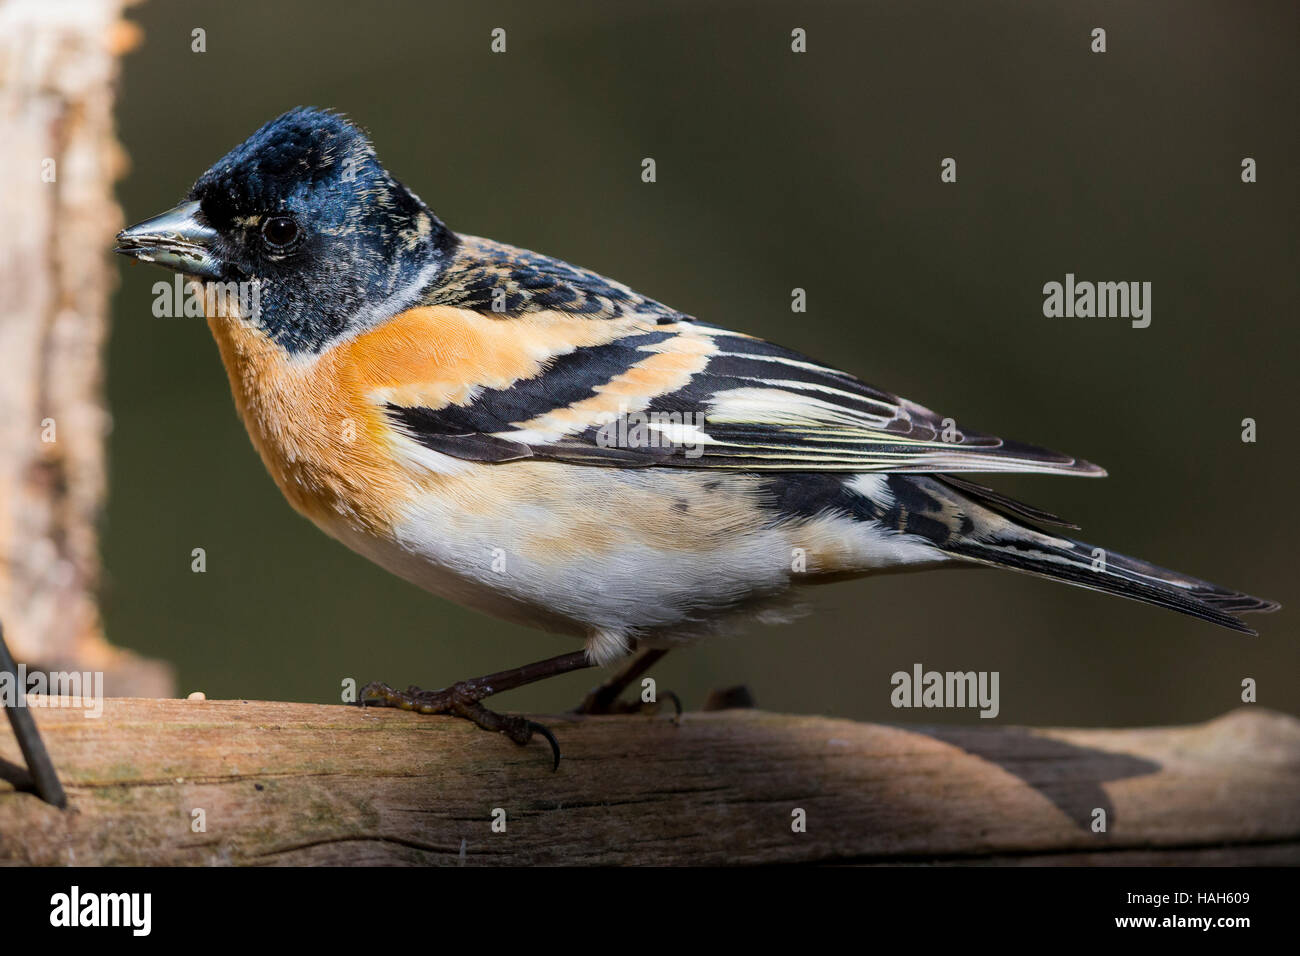 Brambling (Fringilla montifringilla), adult male at bird feeder - Stock Image